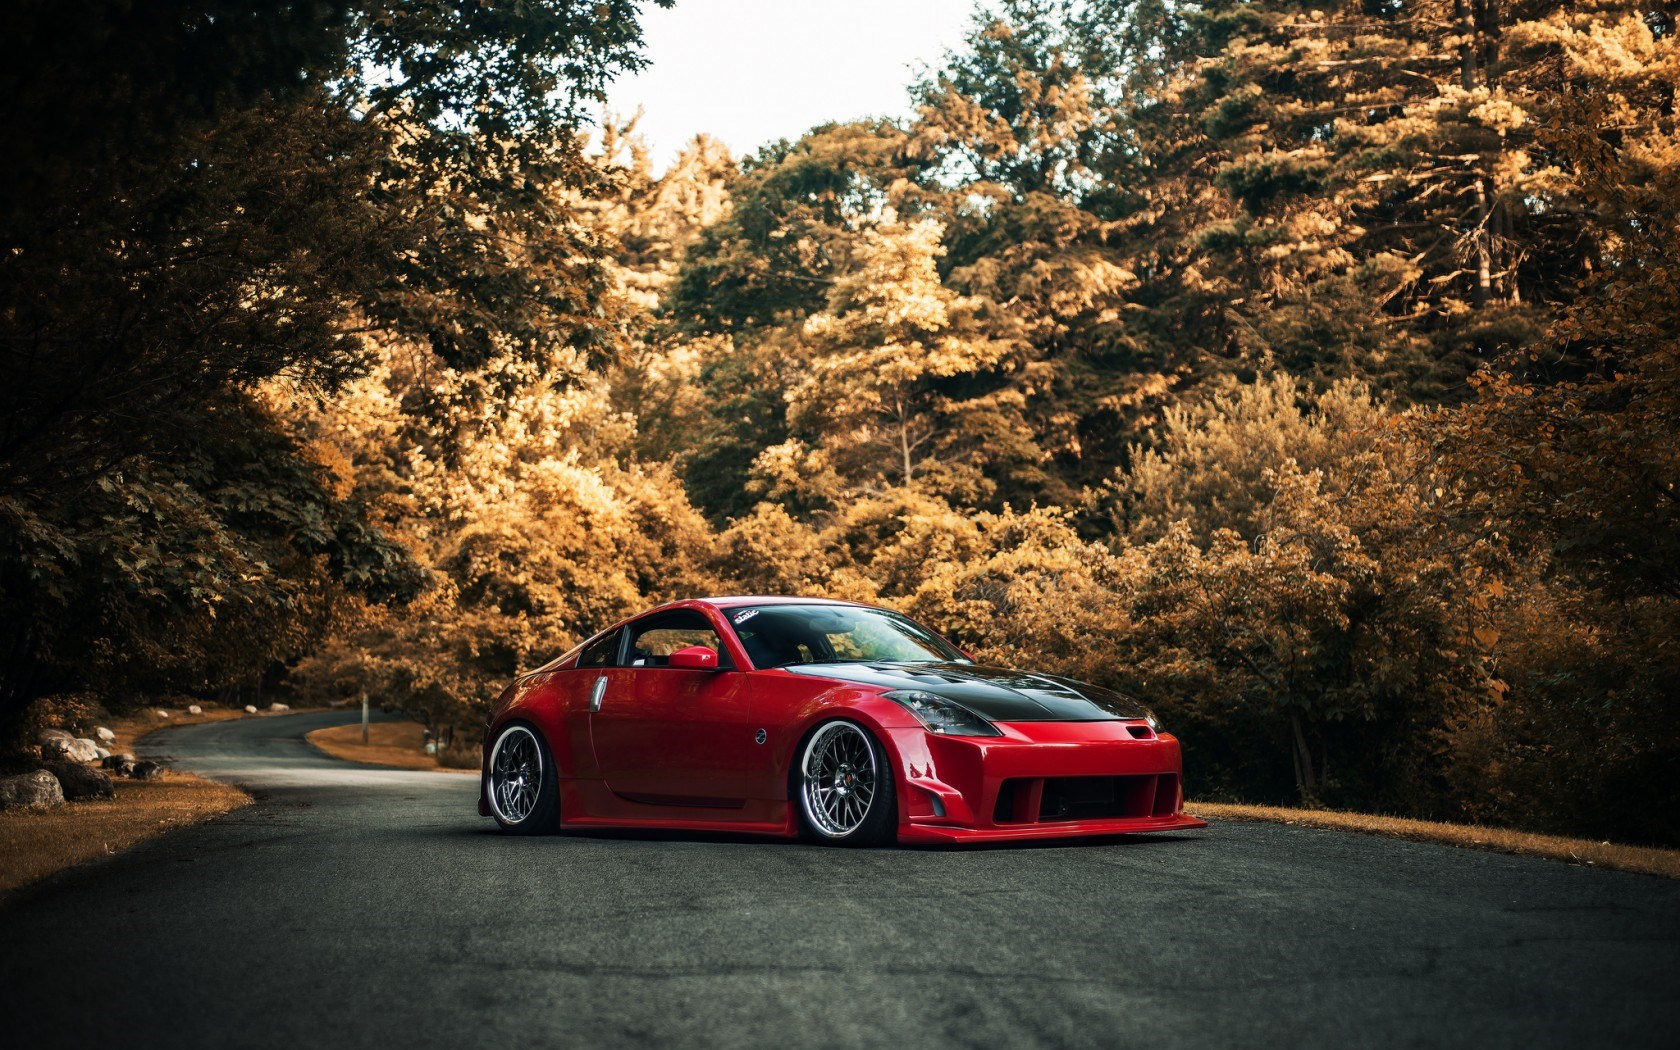 Road Nissan 350z Tuning Photo